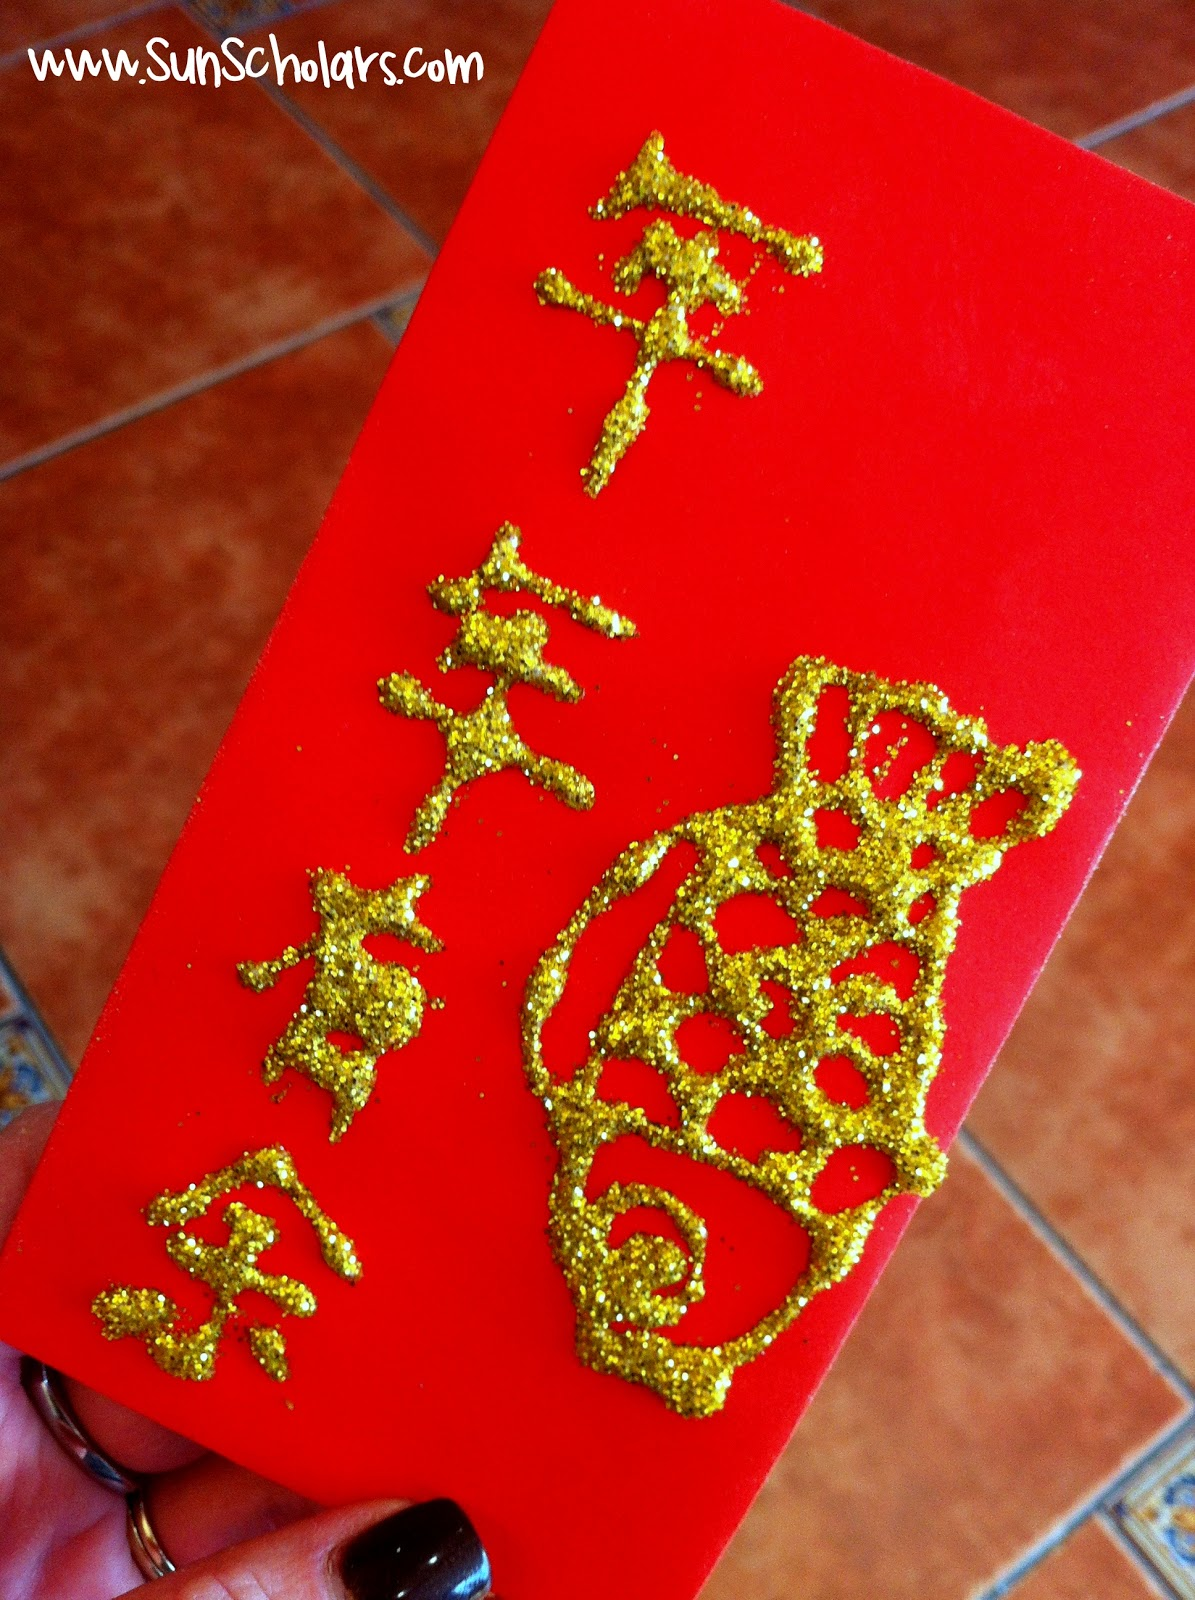 New year s eve traditions red envelopes china red ted art s blog